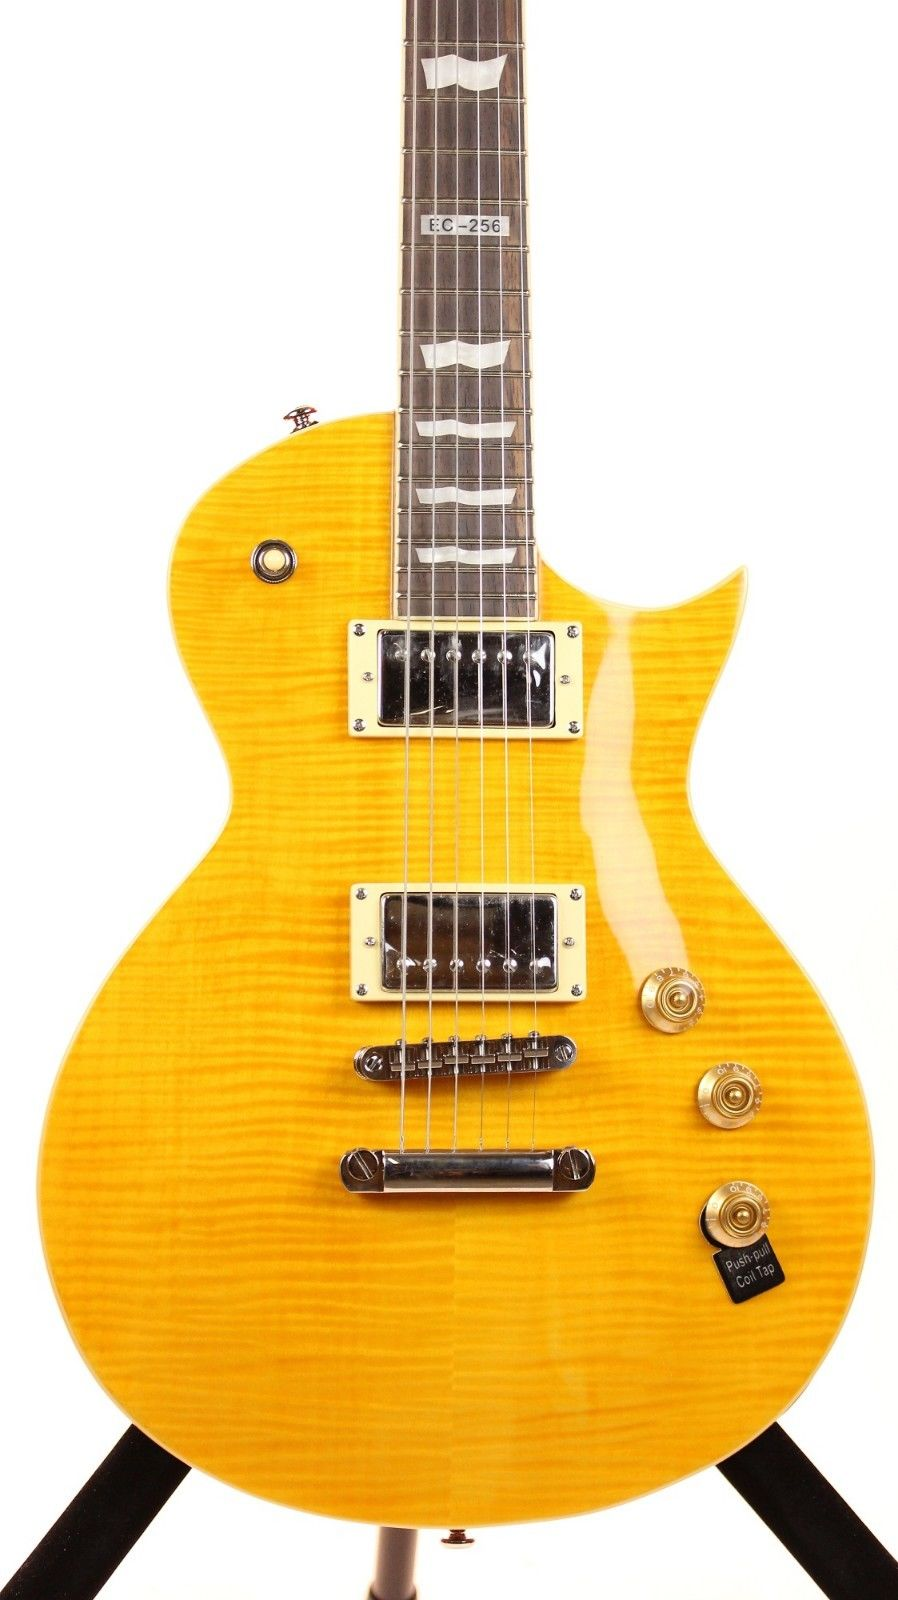 ESP LTD EC-256FM LD Distressed Electric Guitar Flame Maple Top with Lemon Drop Finish